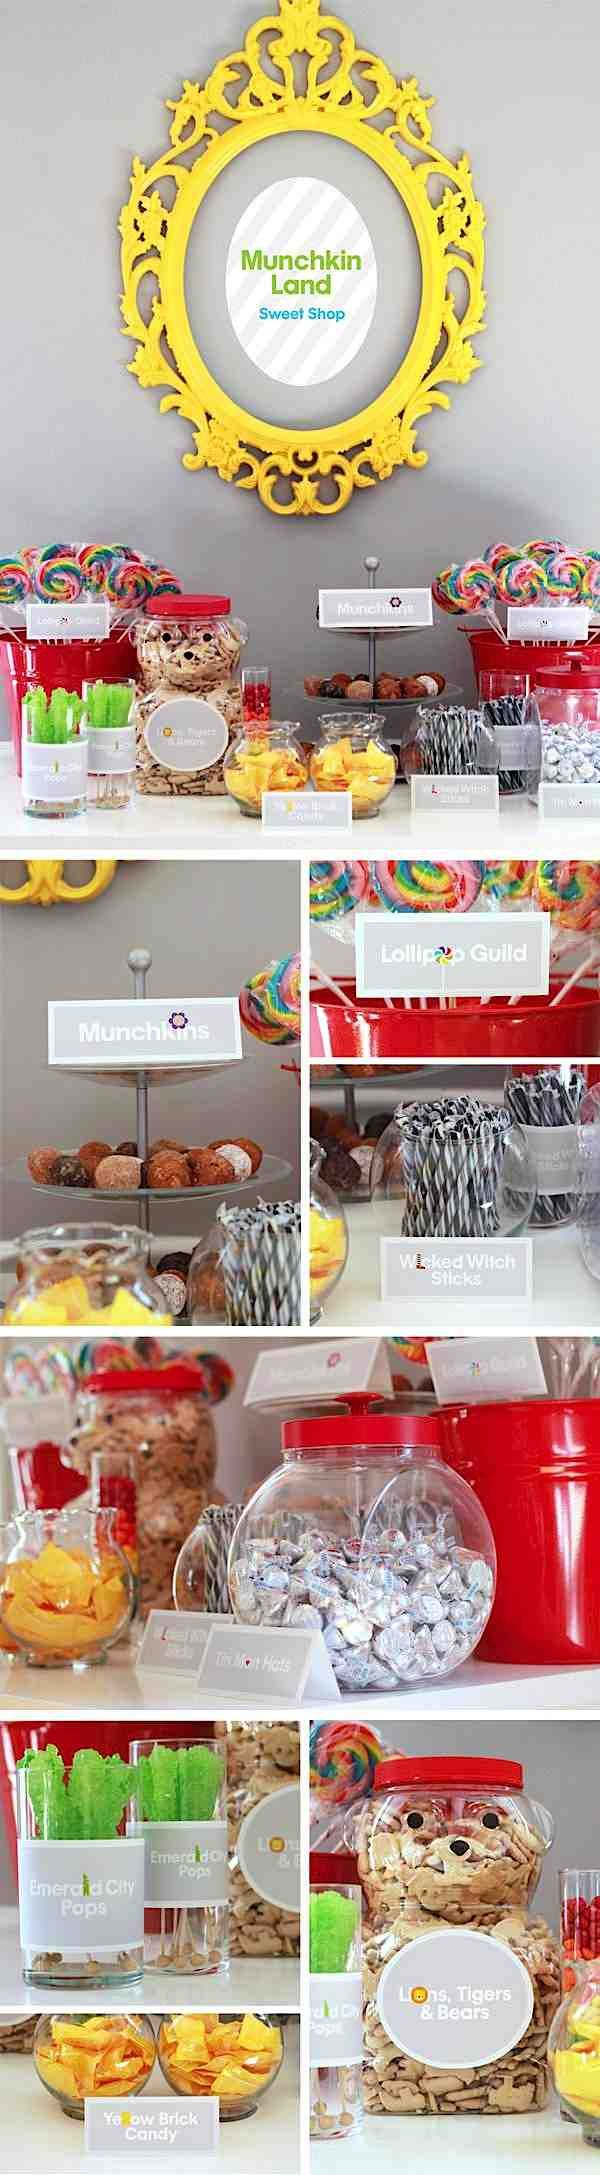 Some cute ideas here. Like using the bear shaped containers of animal crackers! Wizard of OZ party Dessert Table lollipops and munchkins